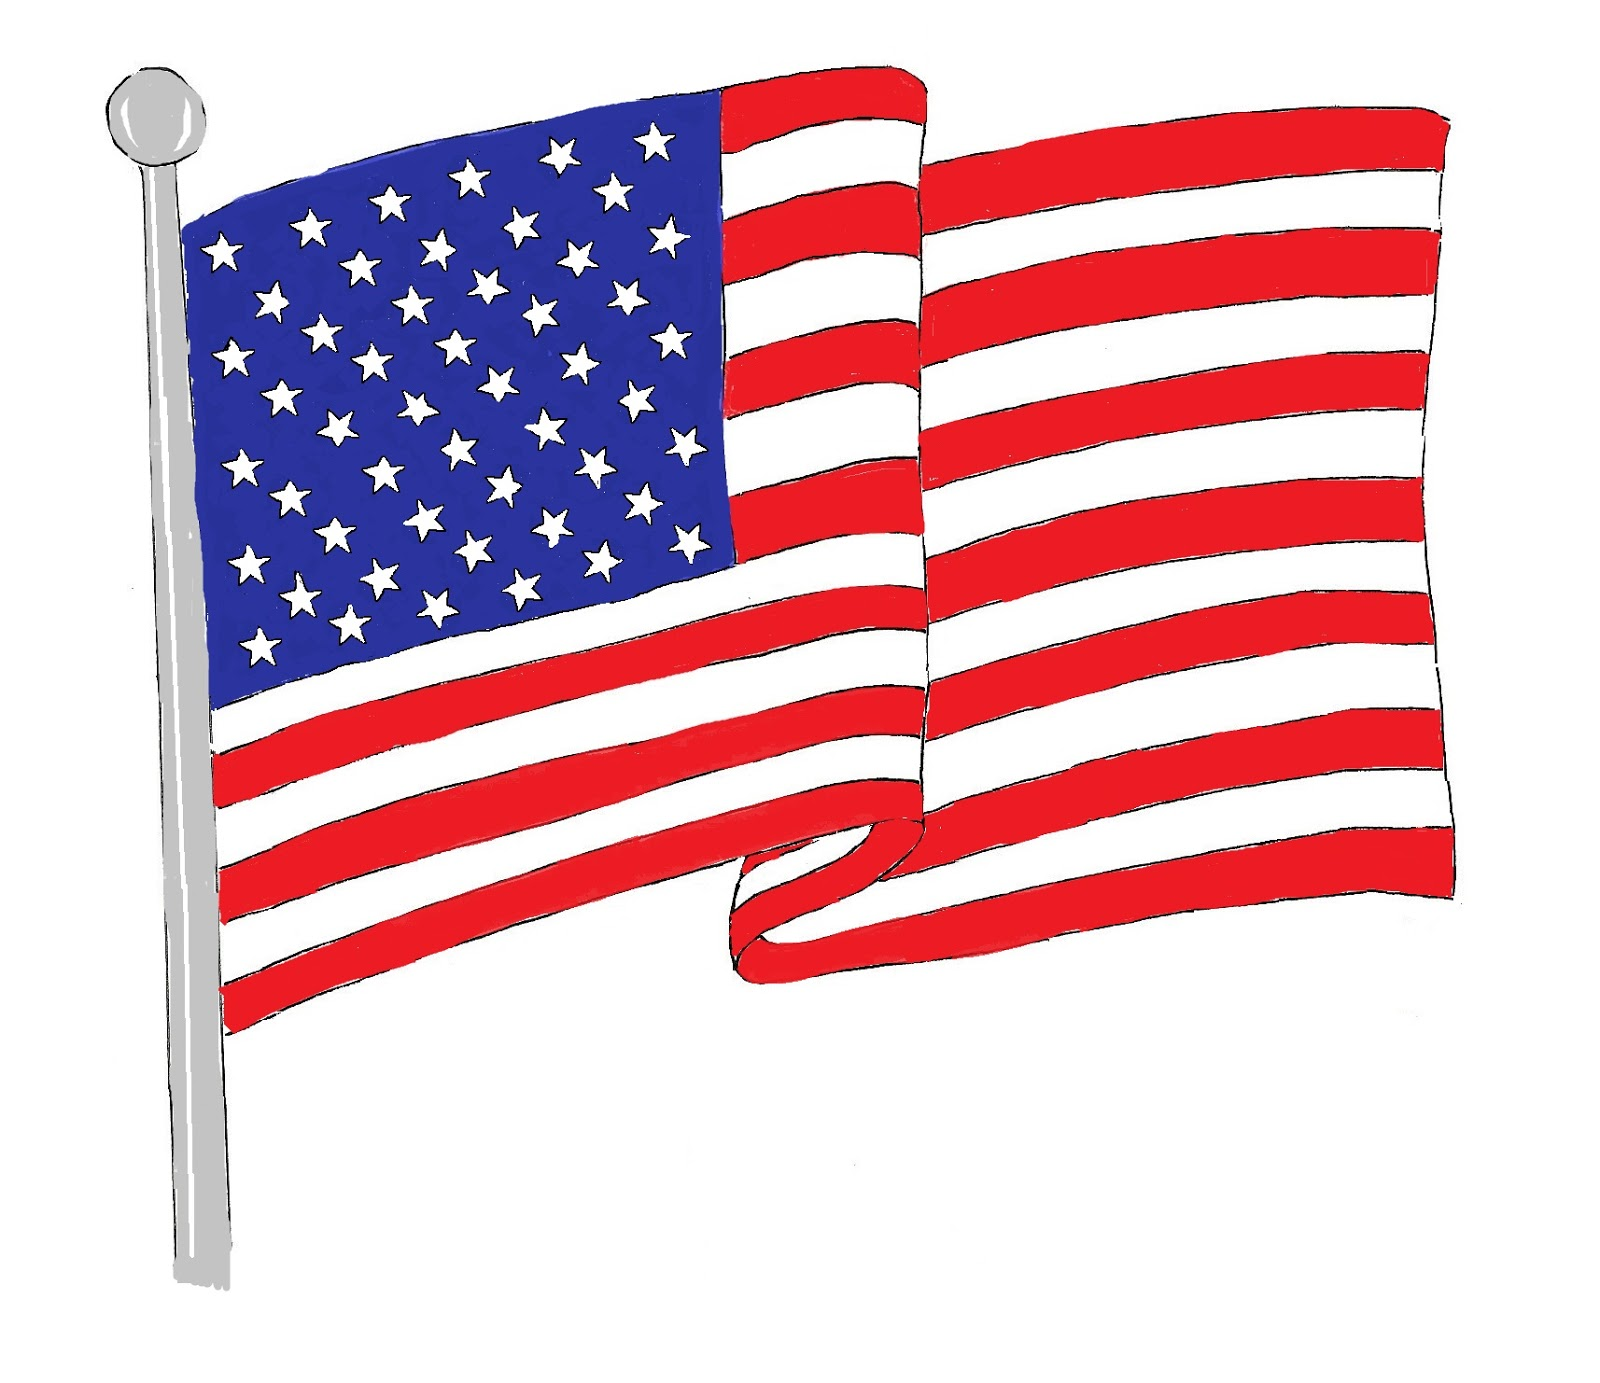 Clipart of us flag graphic free stock Us flag american flag free clip art clipart 5 - Clipartix graphic free stock